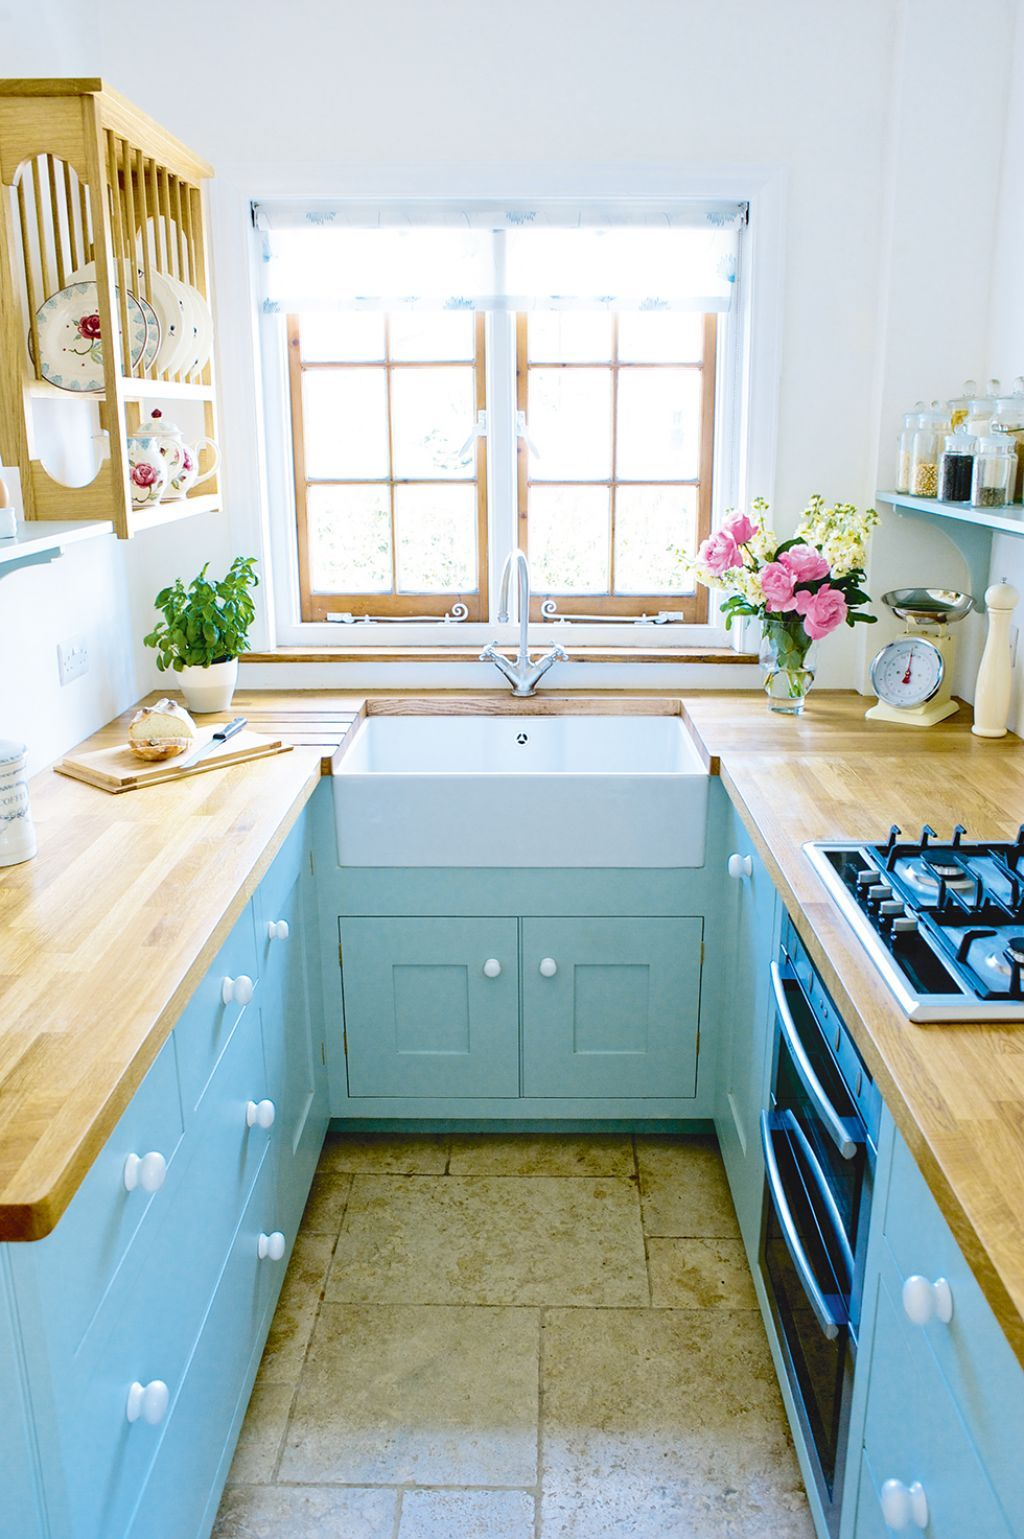 Galley Kitchen With Apron Sink And Blue Cabinets | Ideas for the ...